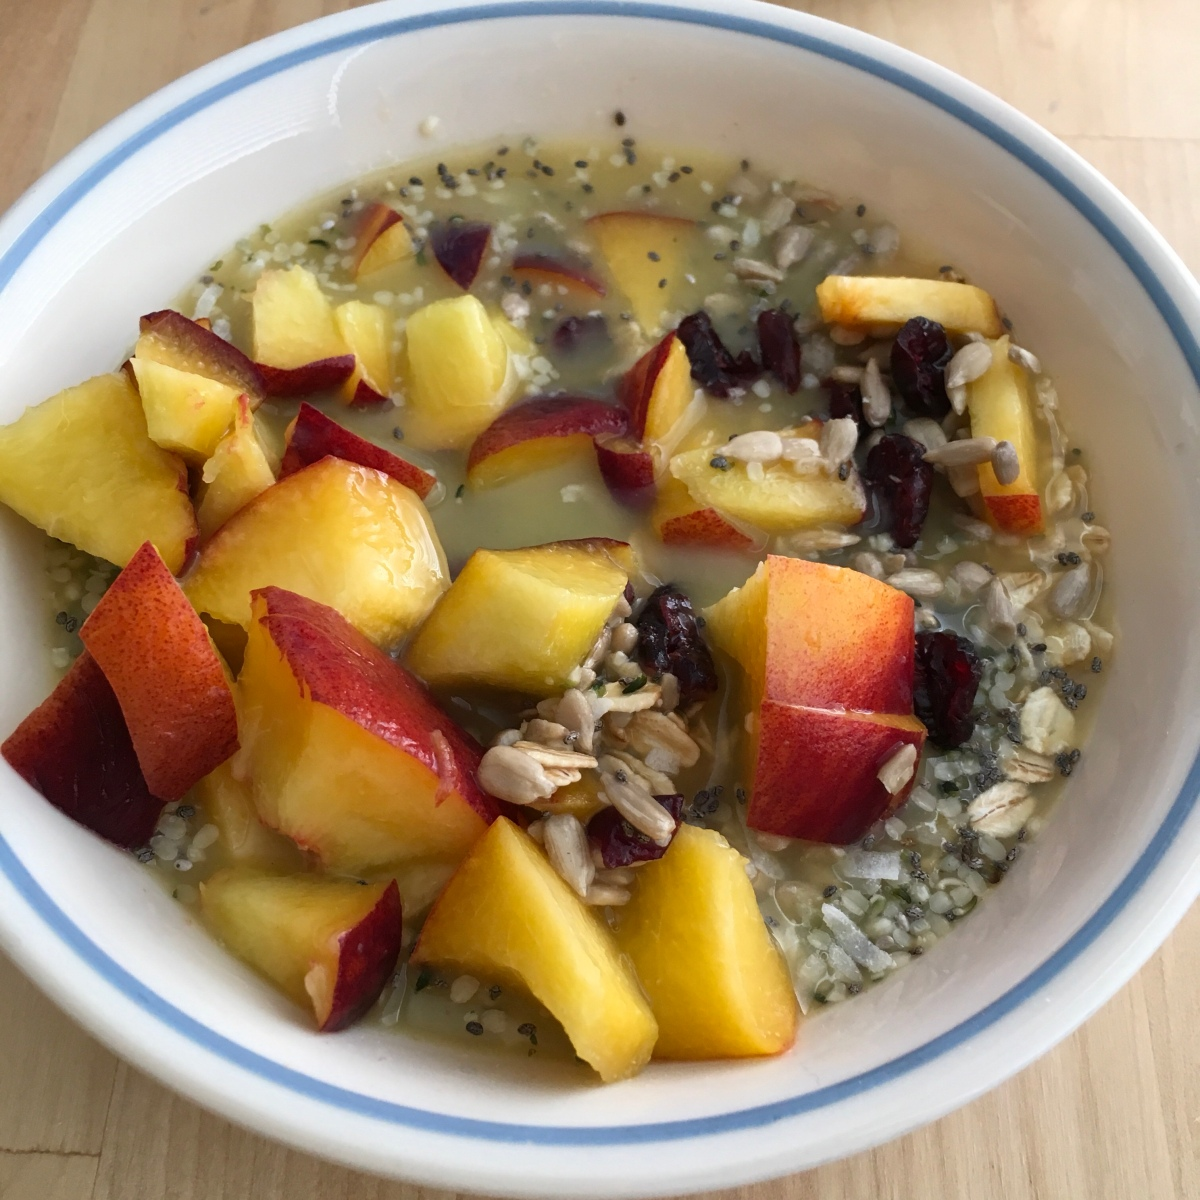 Chilly Peach Oats andMore!